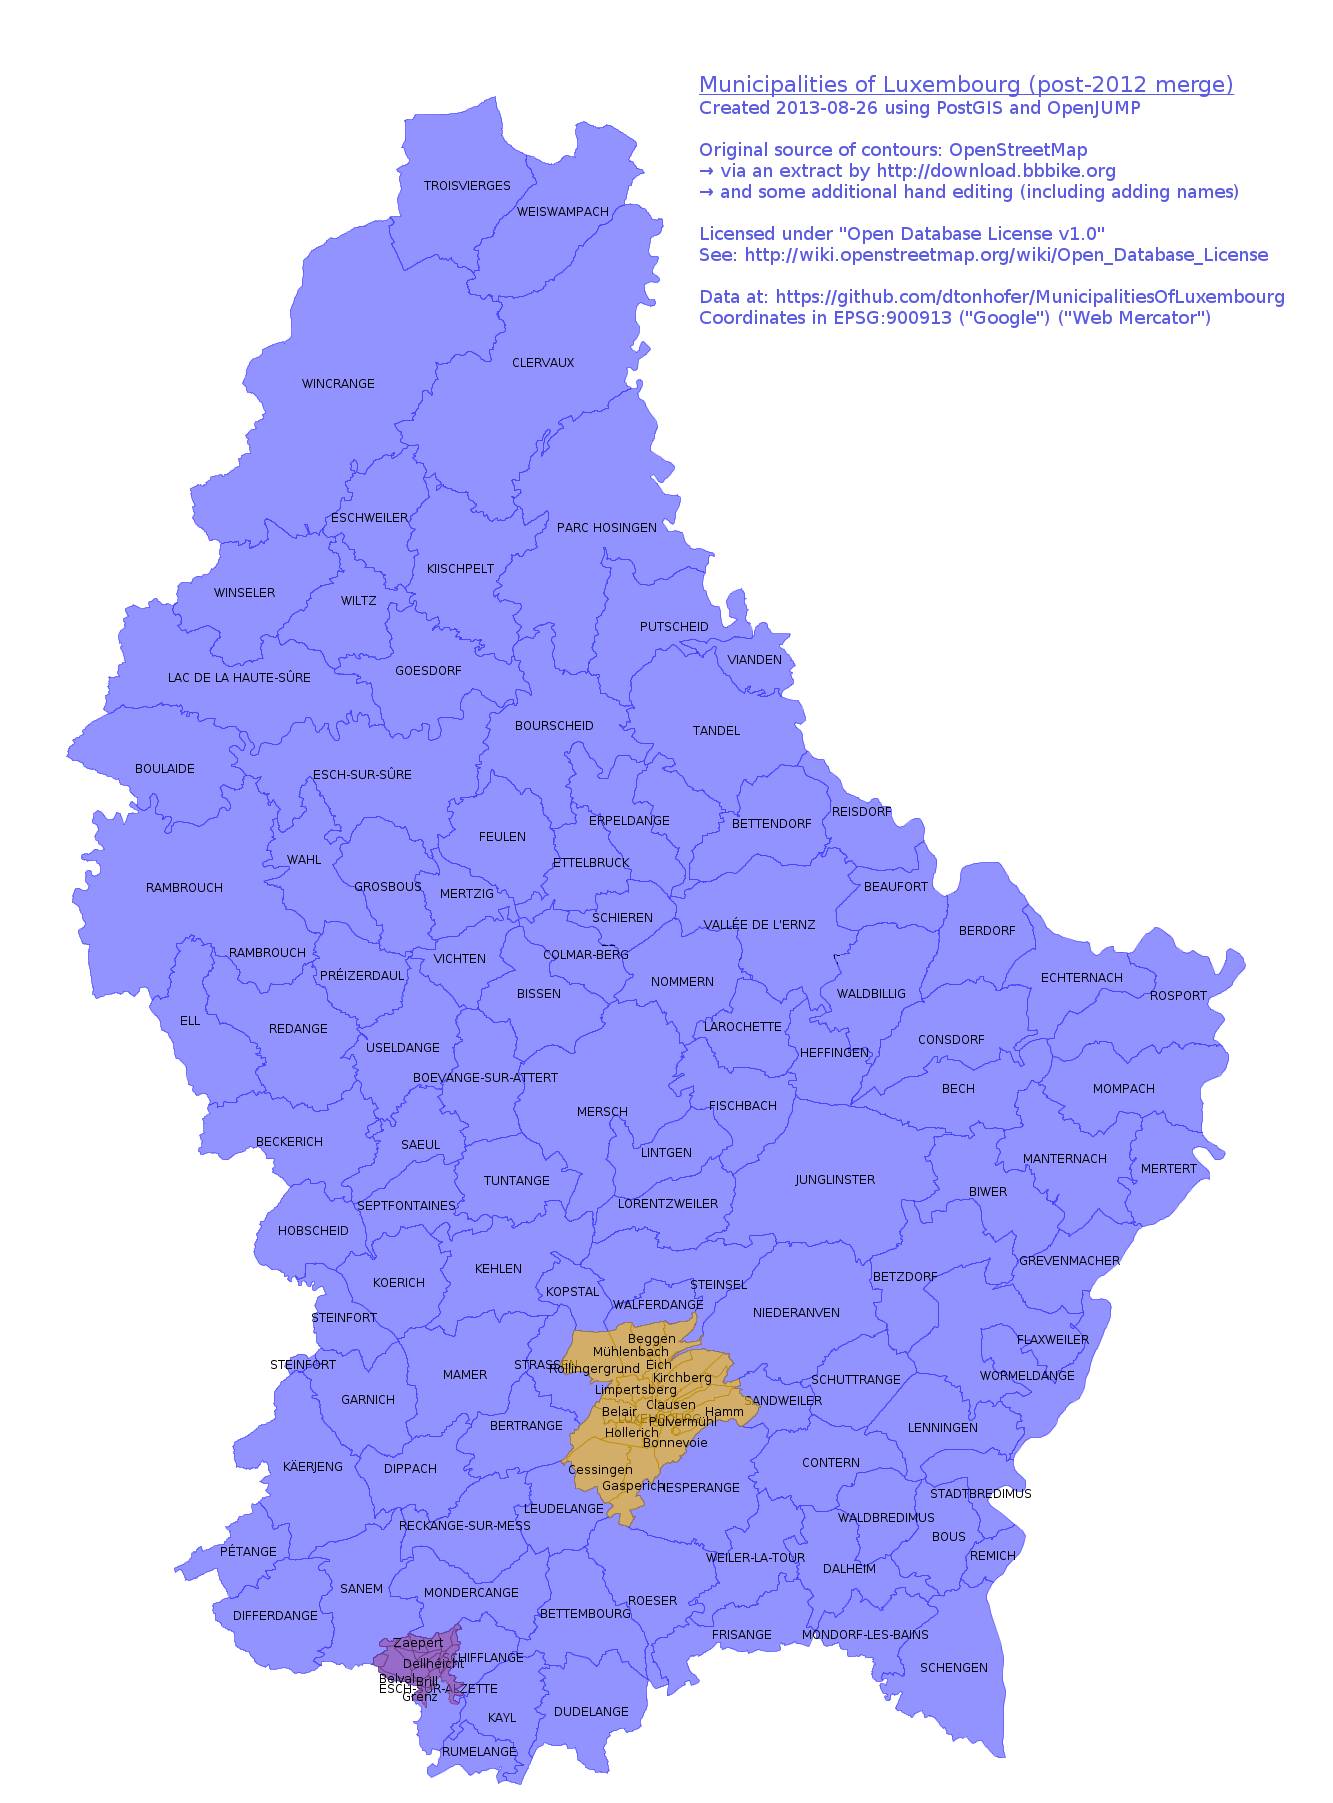 Municipalities of the Grand-Duchy of Luxembourg